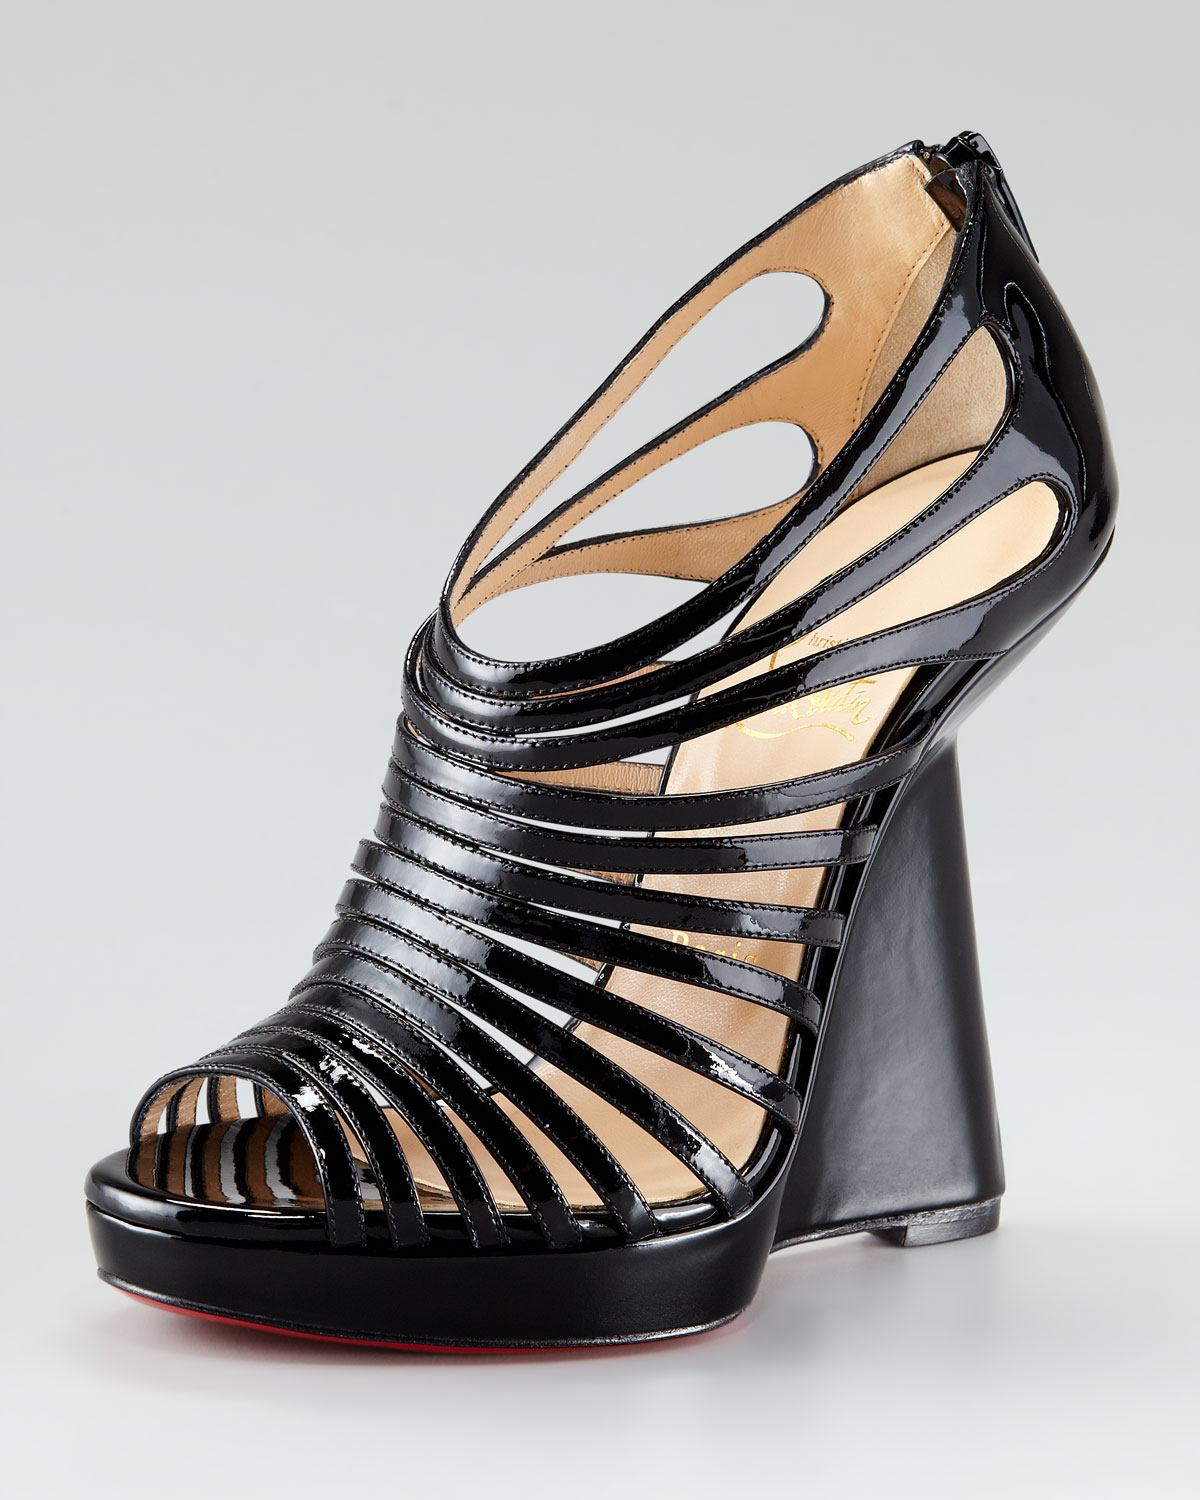 mens replica christian louboutin shoes - Christian louboutin Disco Queen Patent Cage Wedge in Black | Lyst